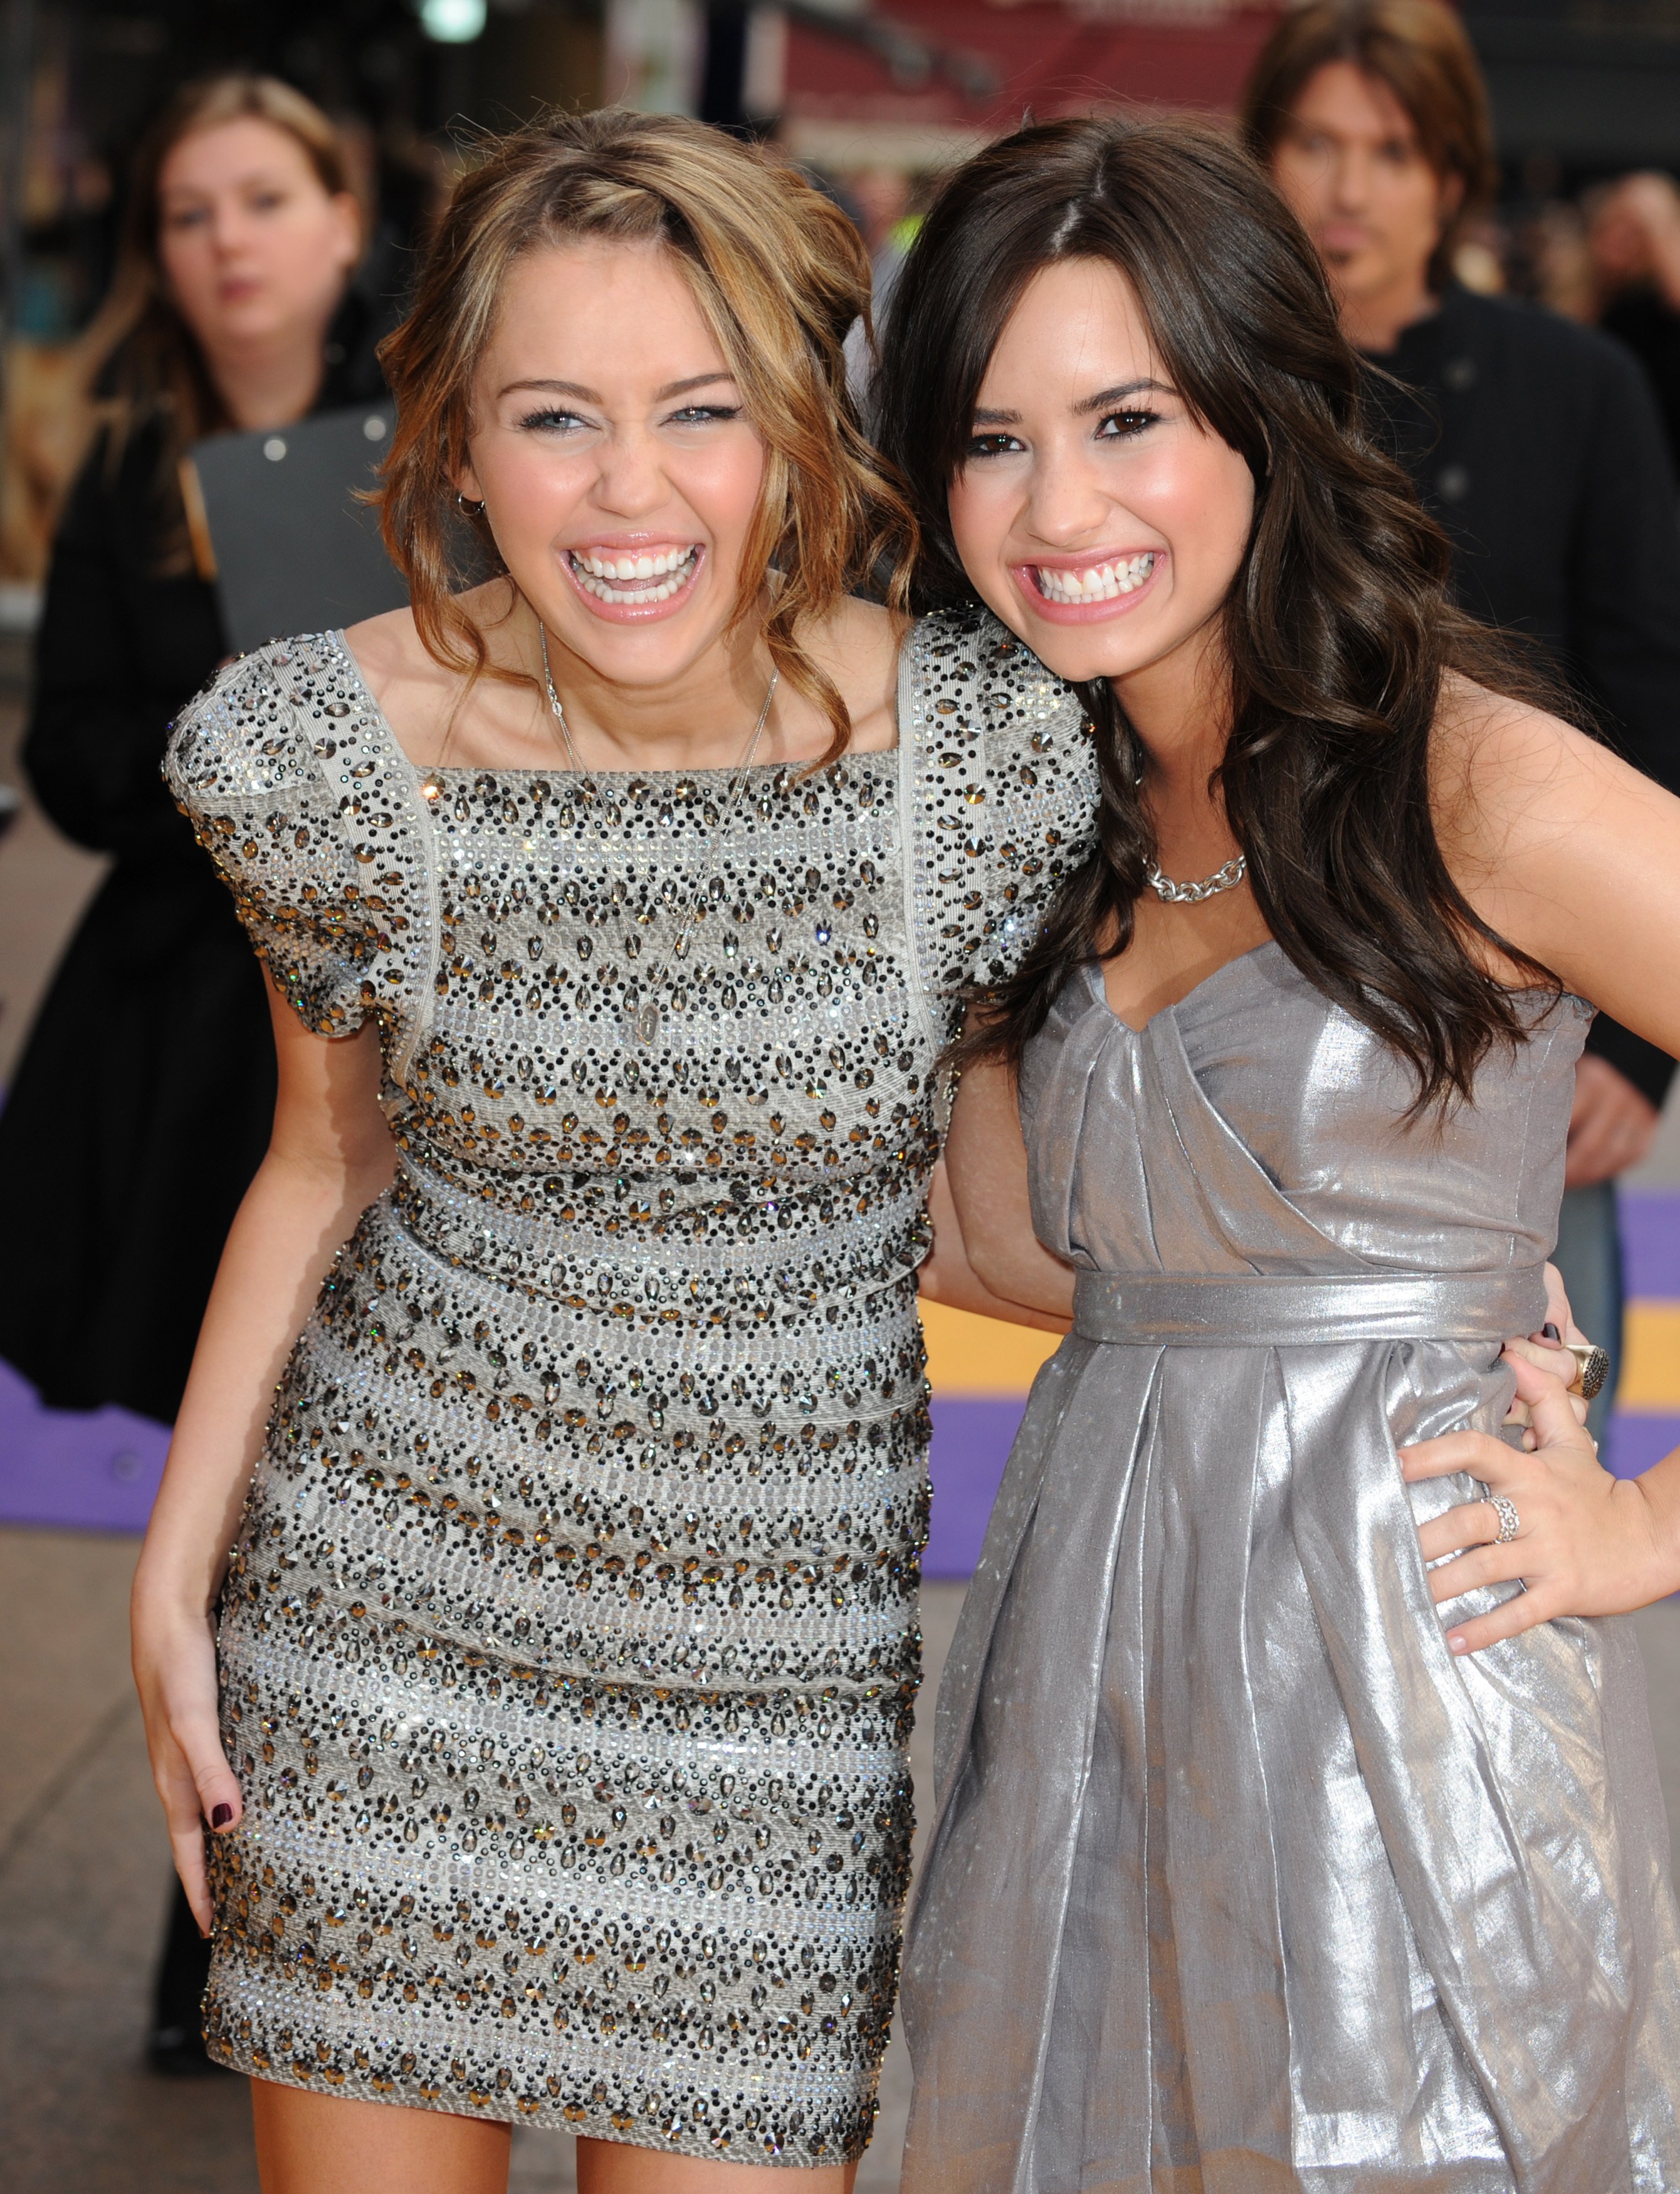 Miley Cyrus Says Her And Demi Lovato Were 'Gay As F*ck' Back In The Day